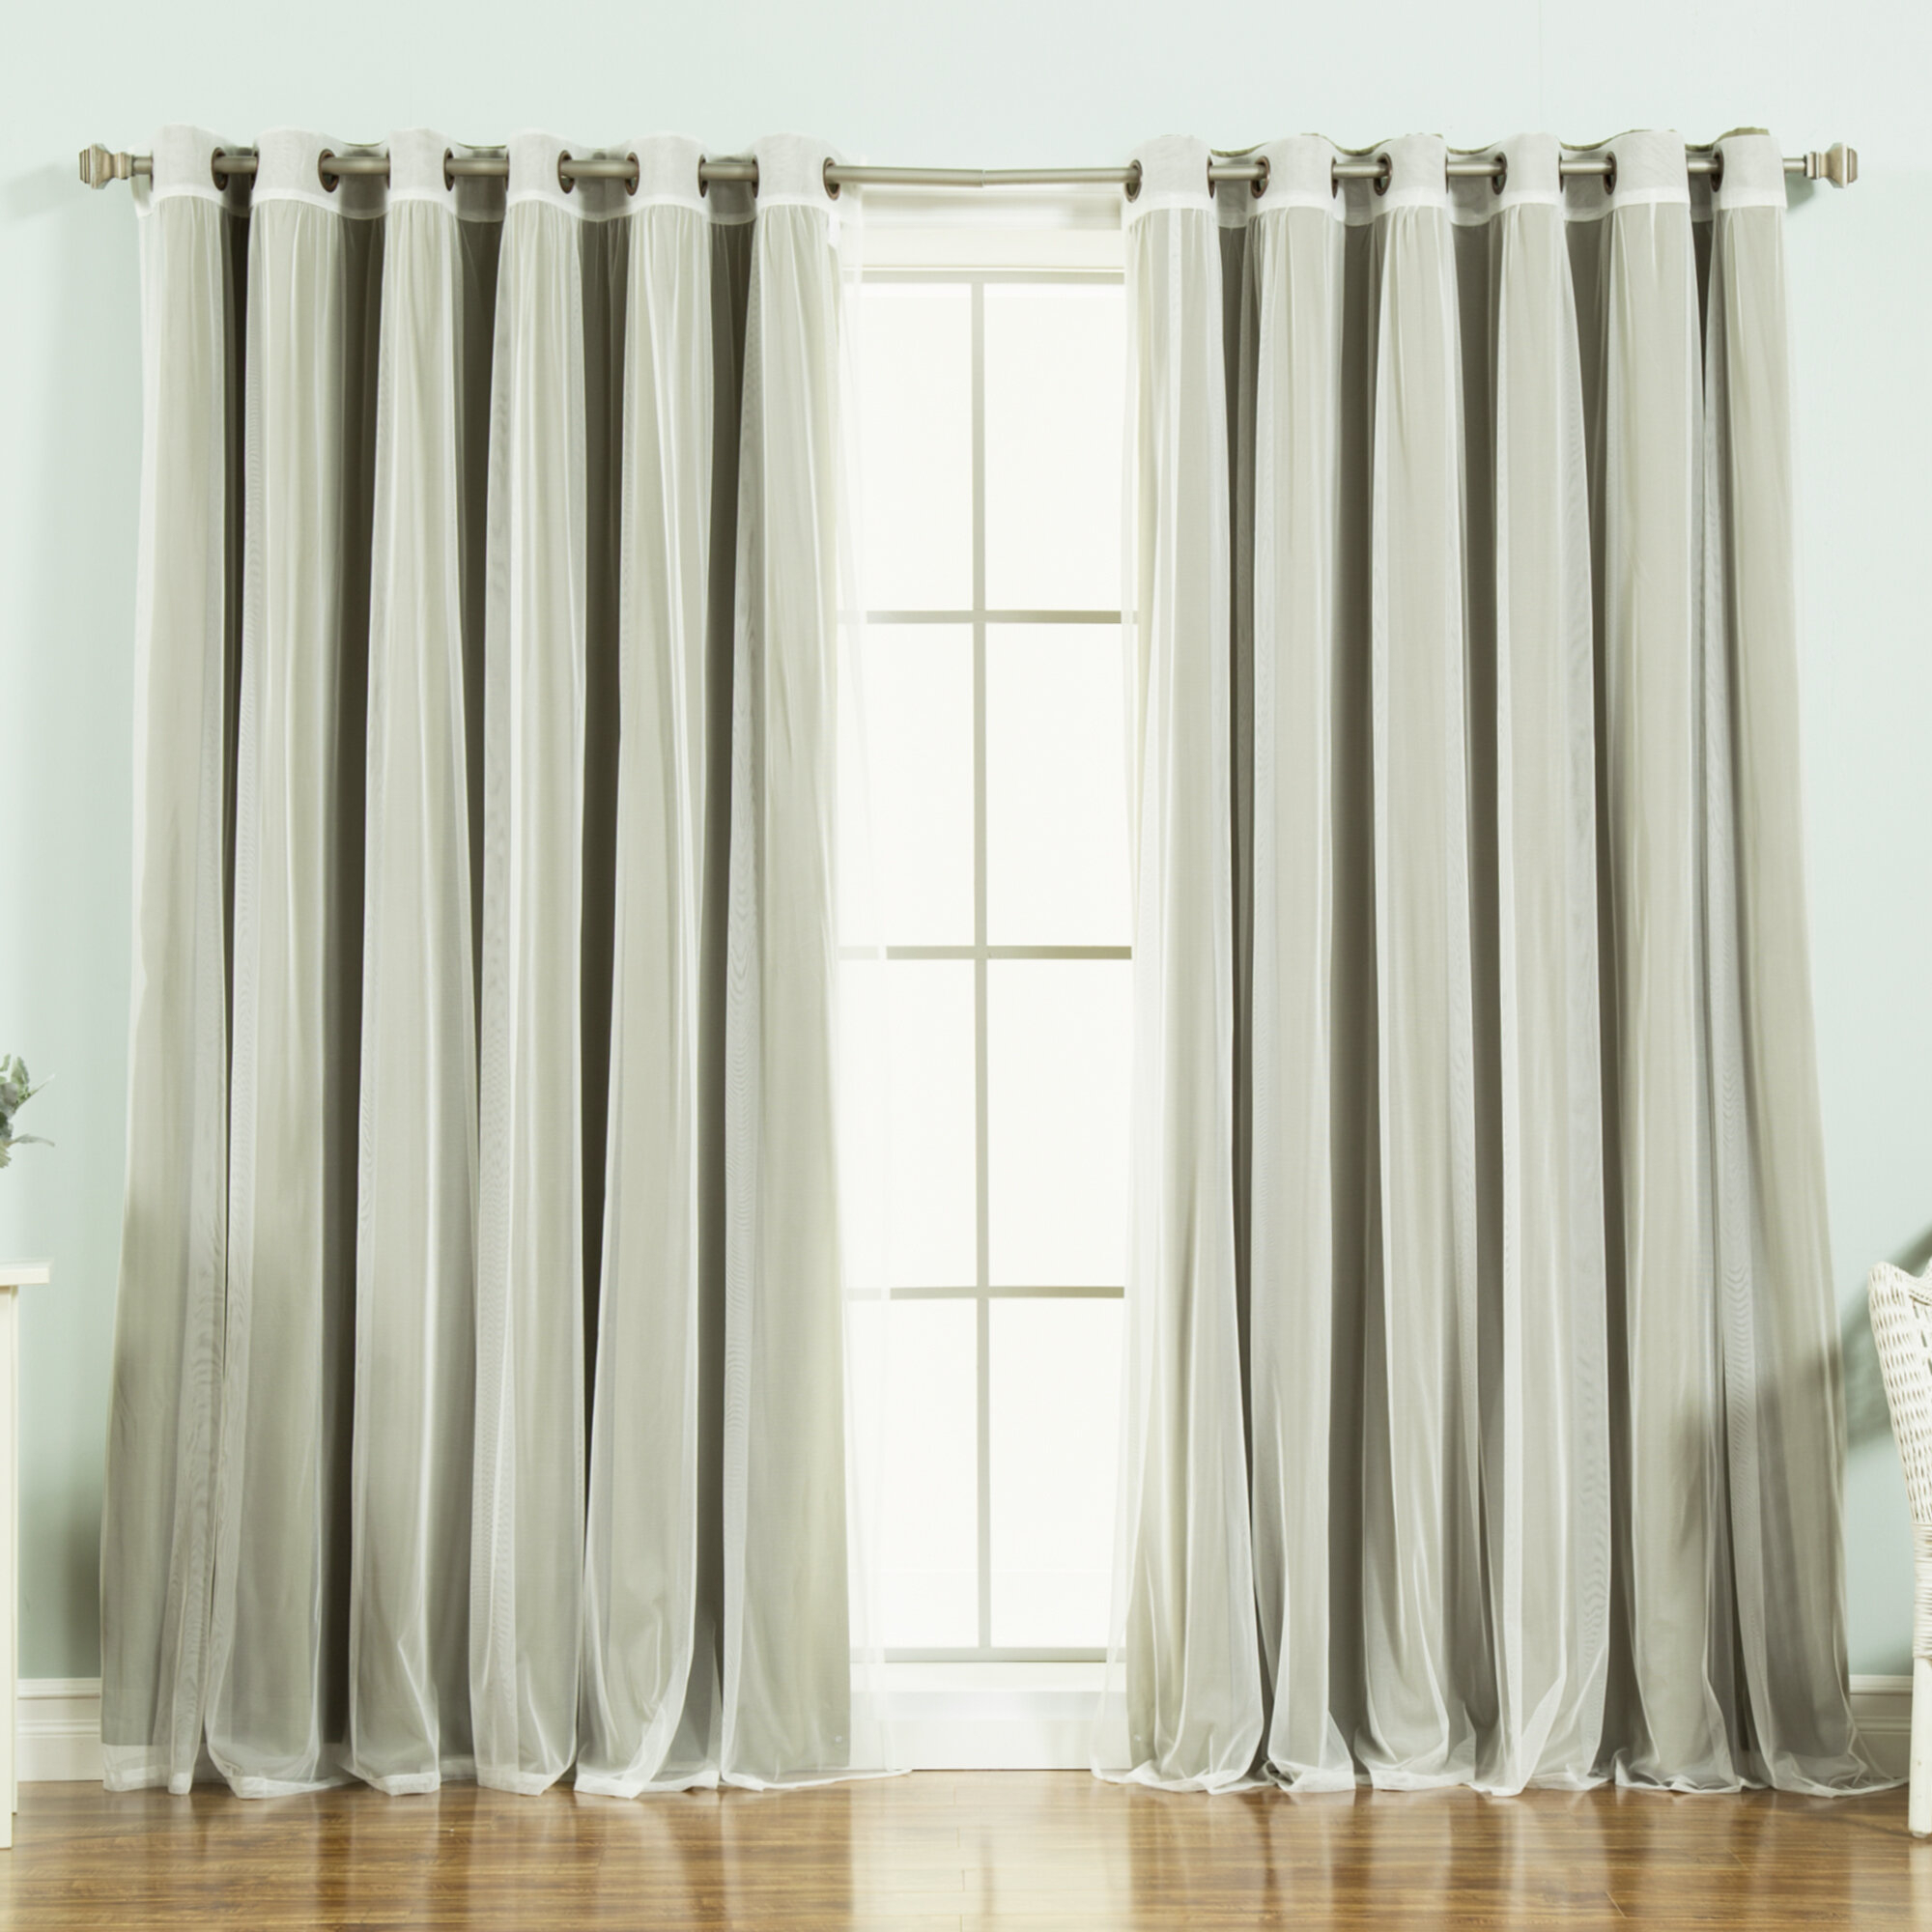 Brunilda Solid Blackout Thermal Grommet Curtain Panels intended for Mix & Match Blackout Tulle Lace Bronze Grommet Curtain Panel Sets (Image 14 of 20)